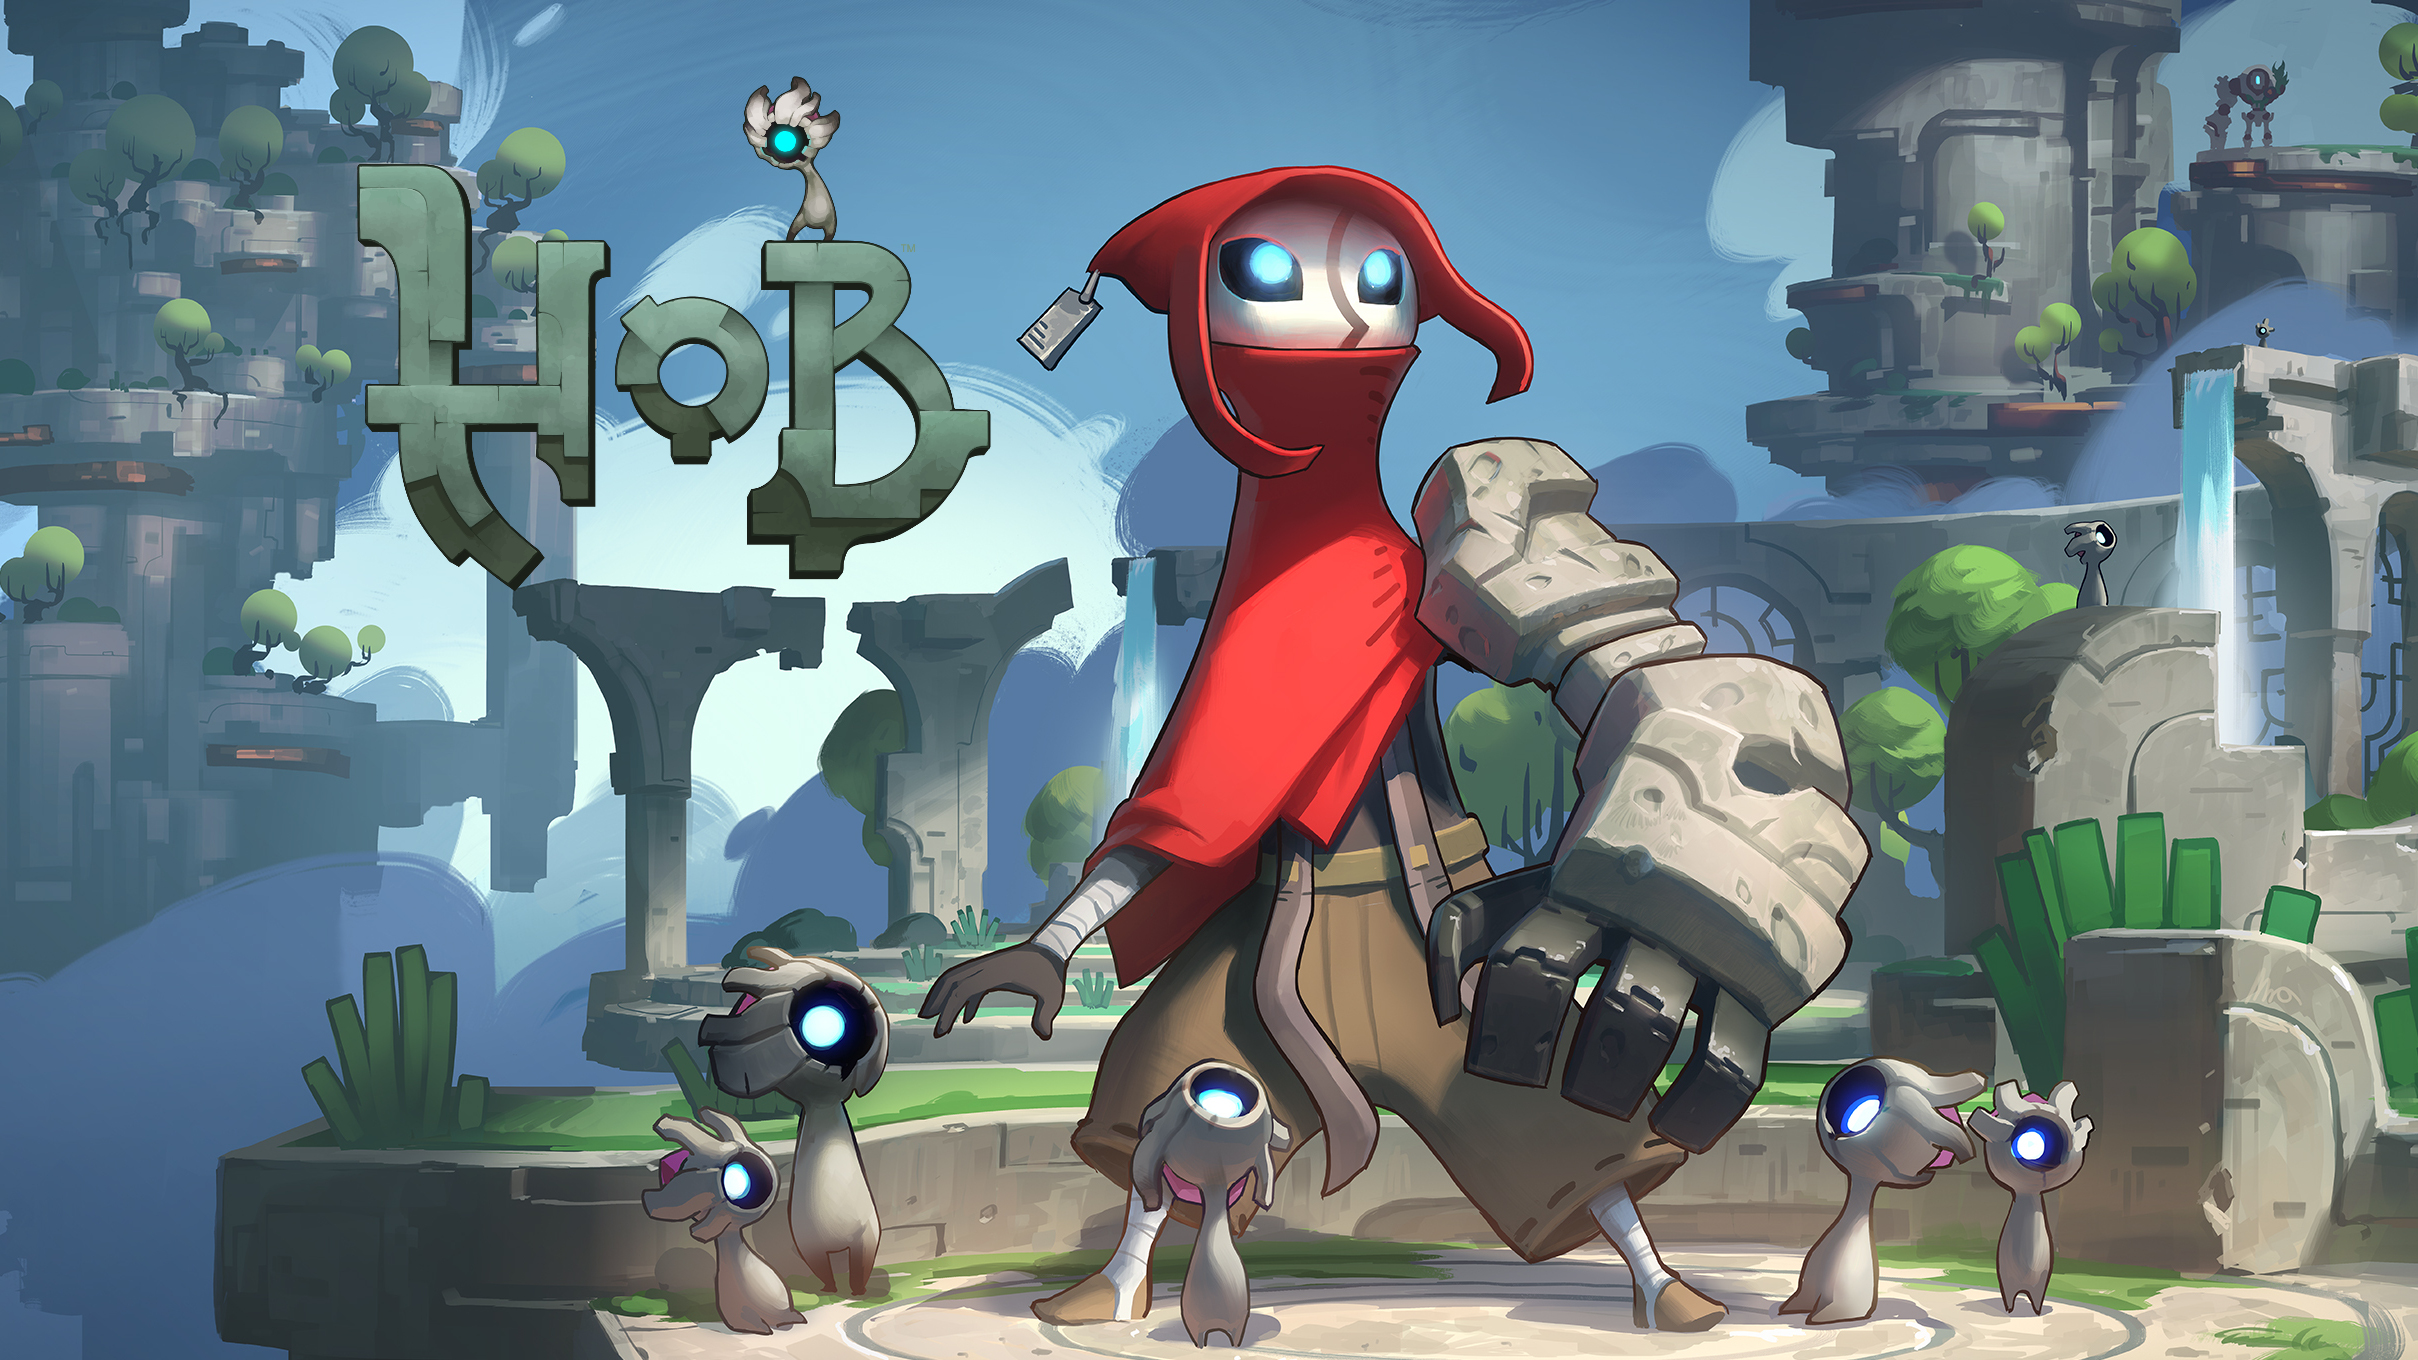 Hob should be at the top of your watchlist.